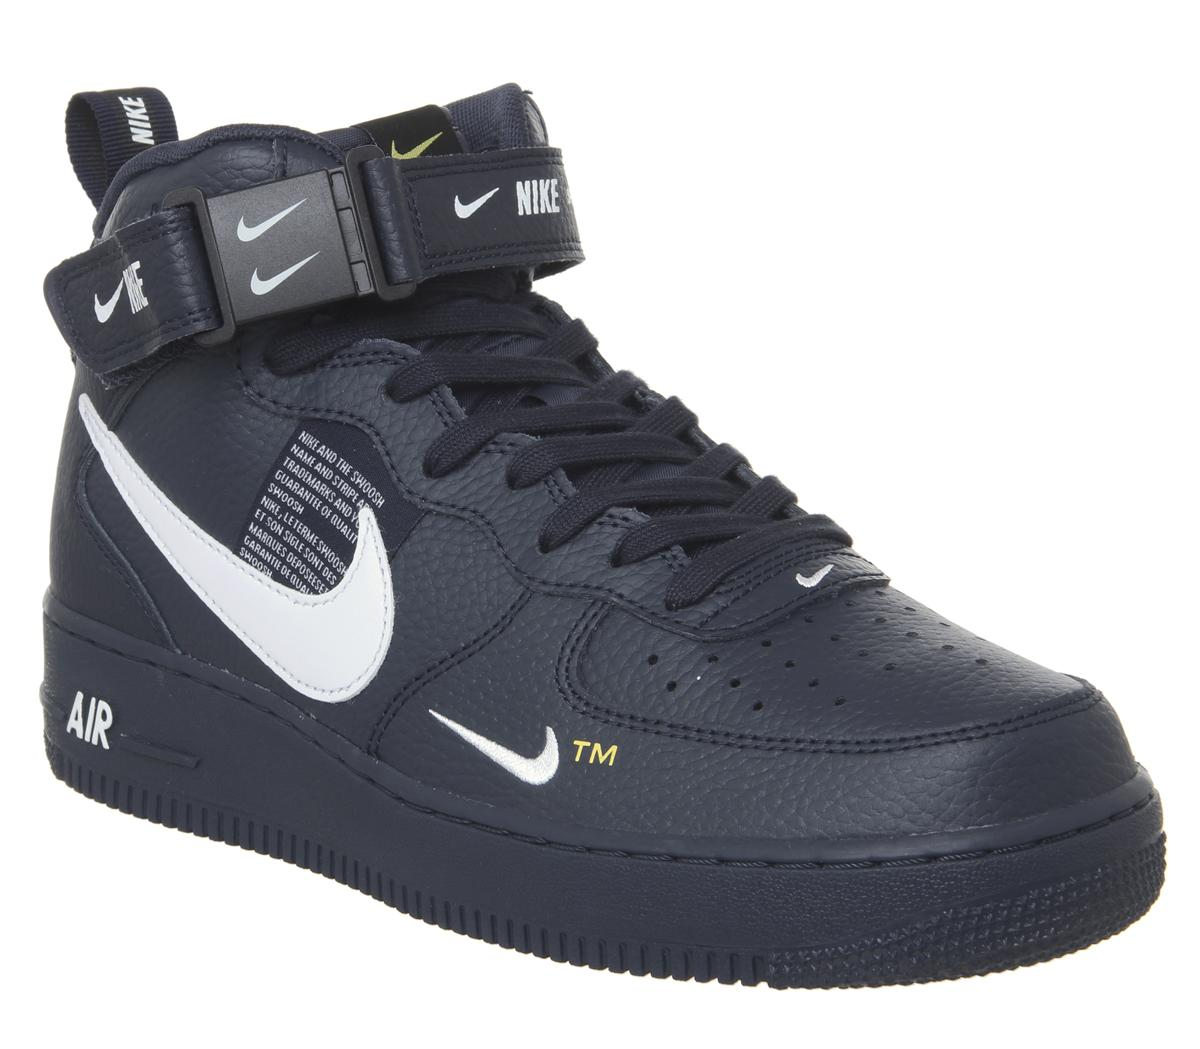 Air Force 1 Mid Lv8 Trainers